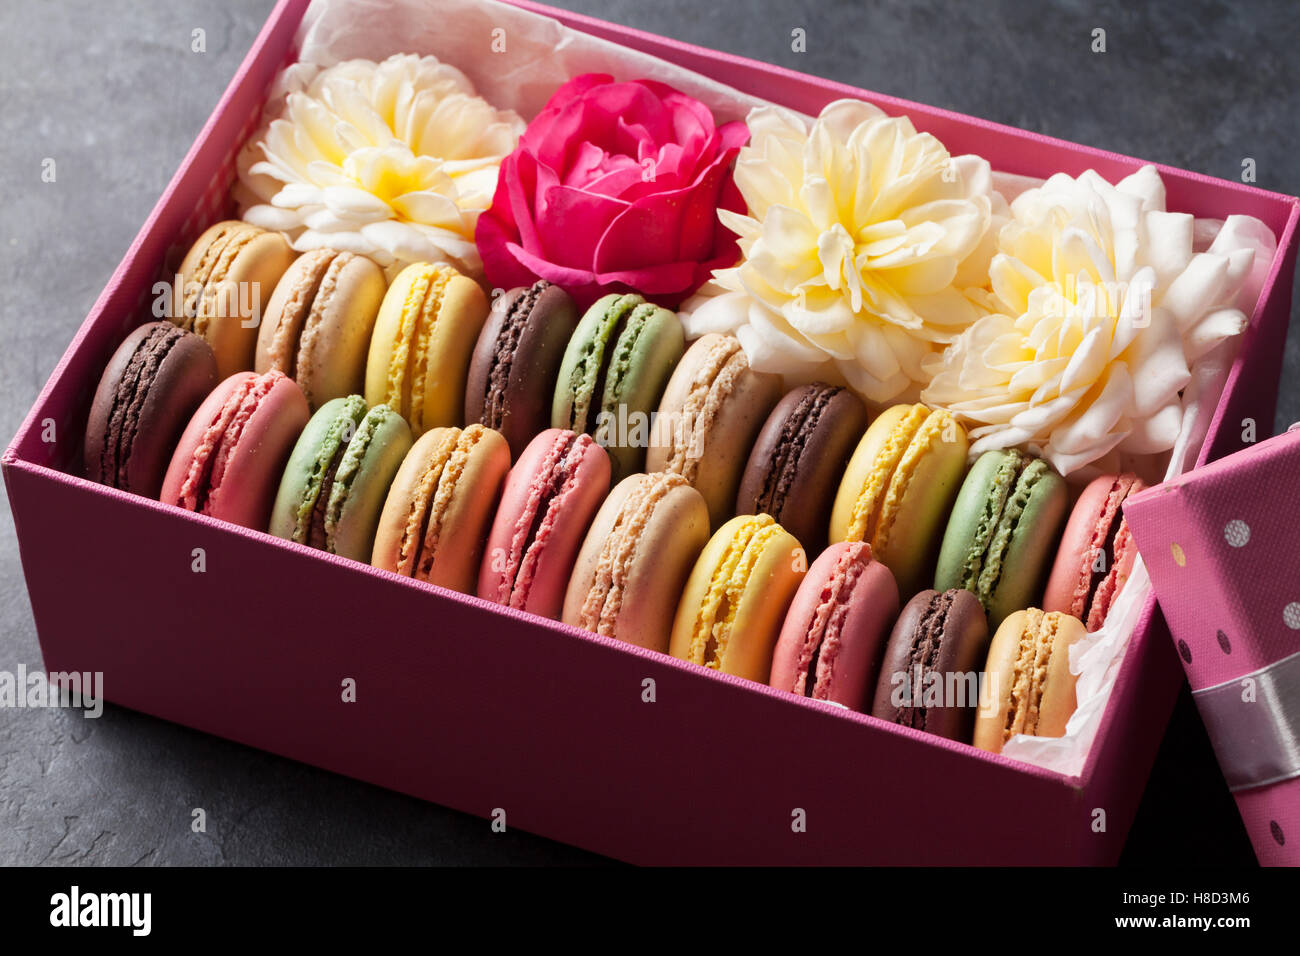 Colorful macaroons and flowers on stone table. Sweet macarons in ...